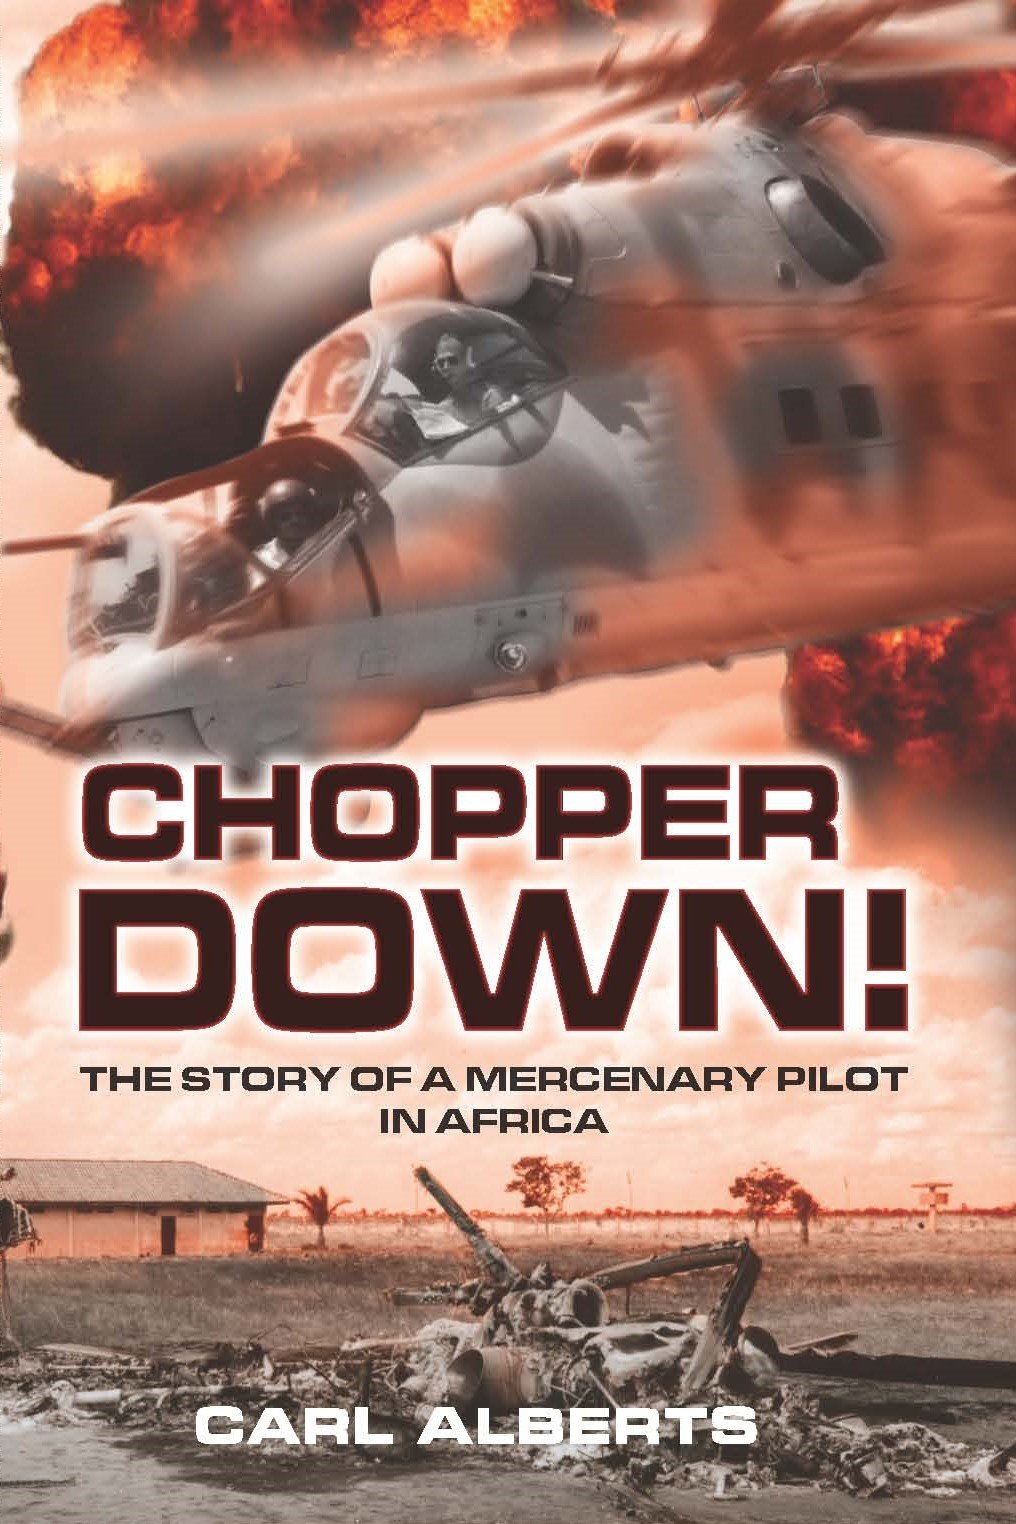 Chopper Down!: The Story of A Mercenary Pilot in Africa